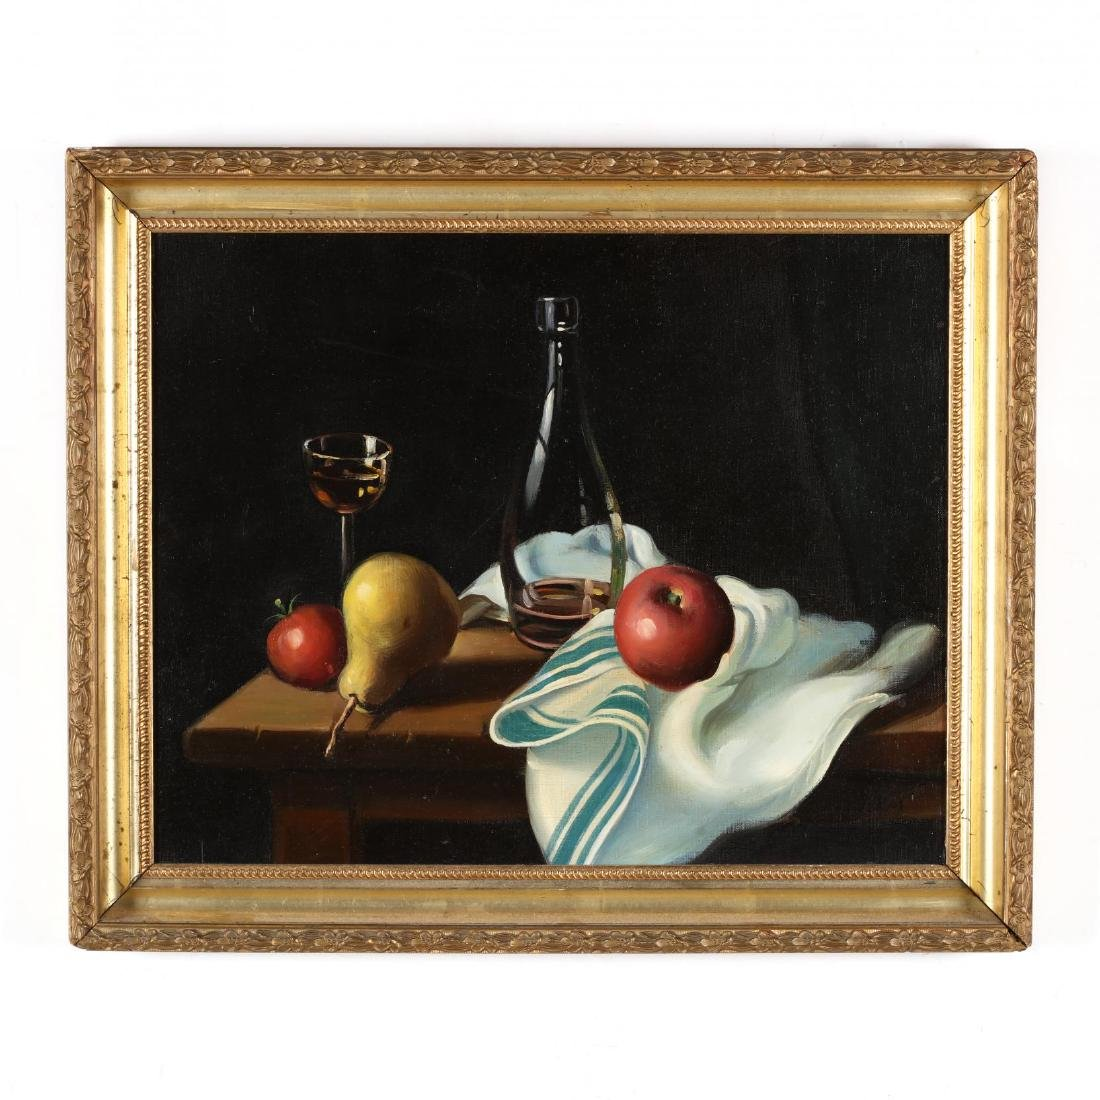 A Vintage Still Life Painting with Fruit